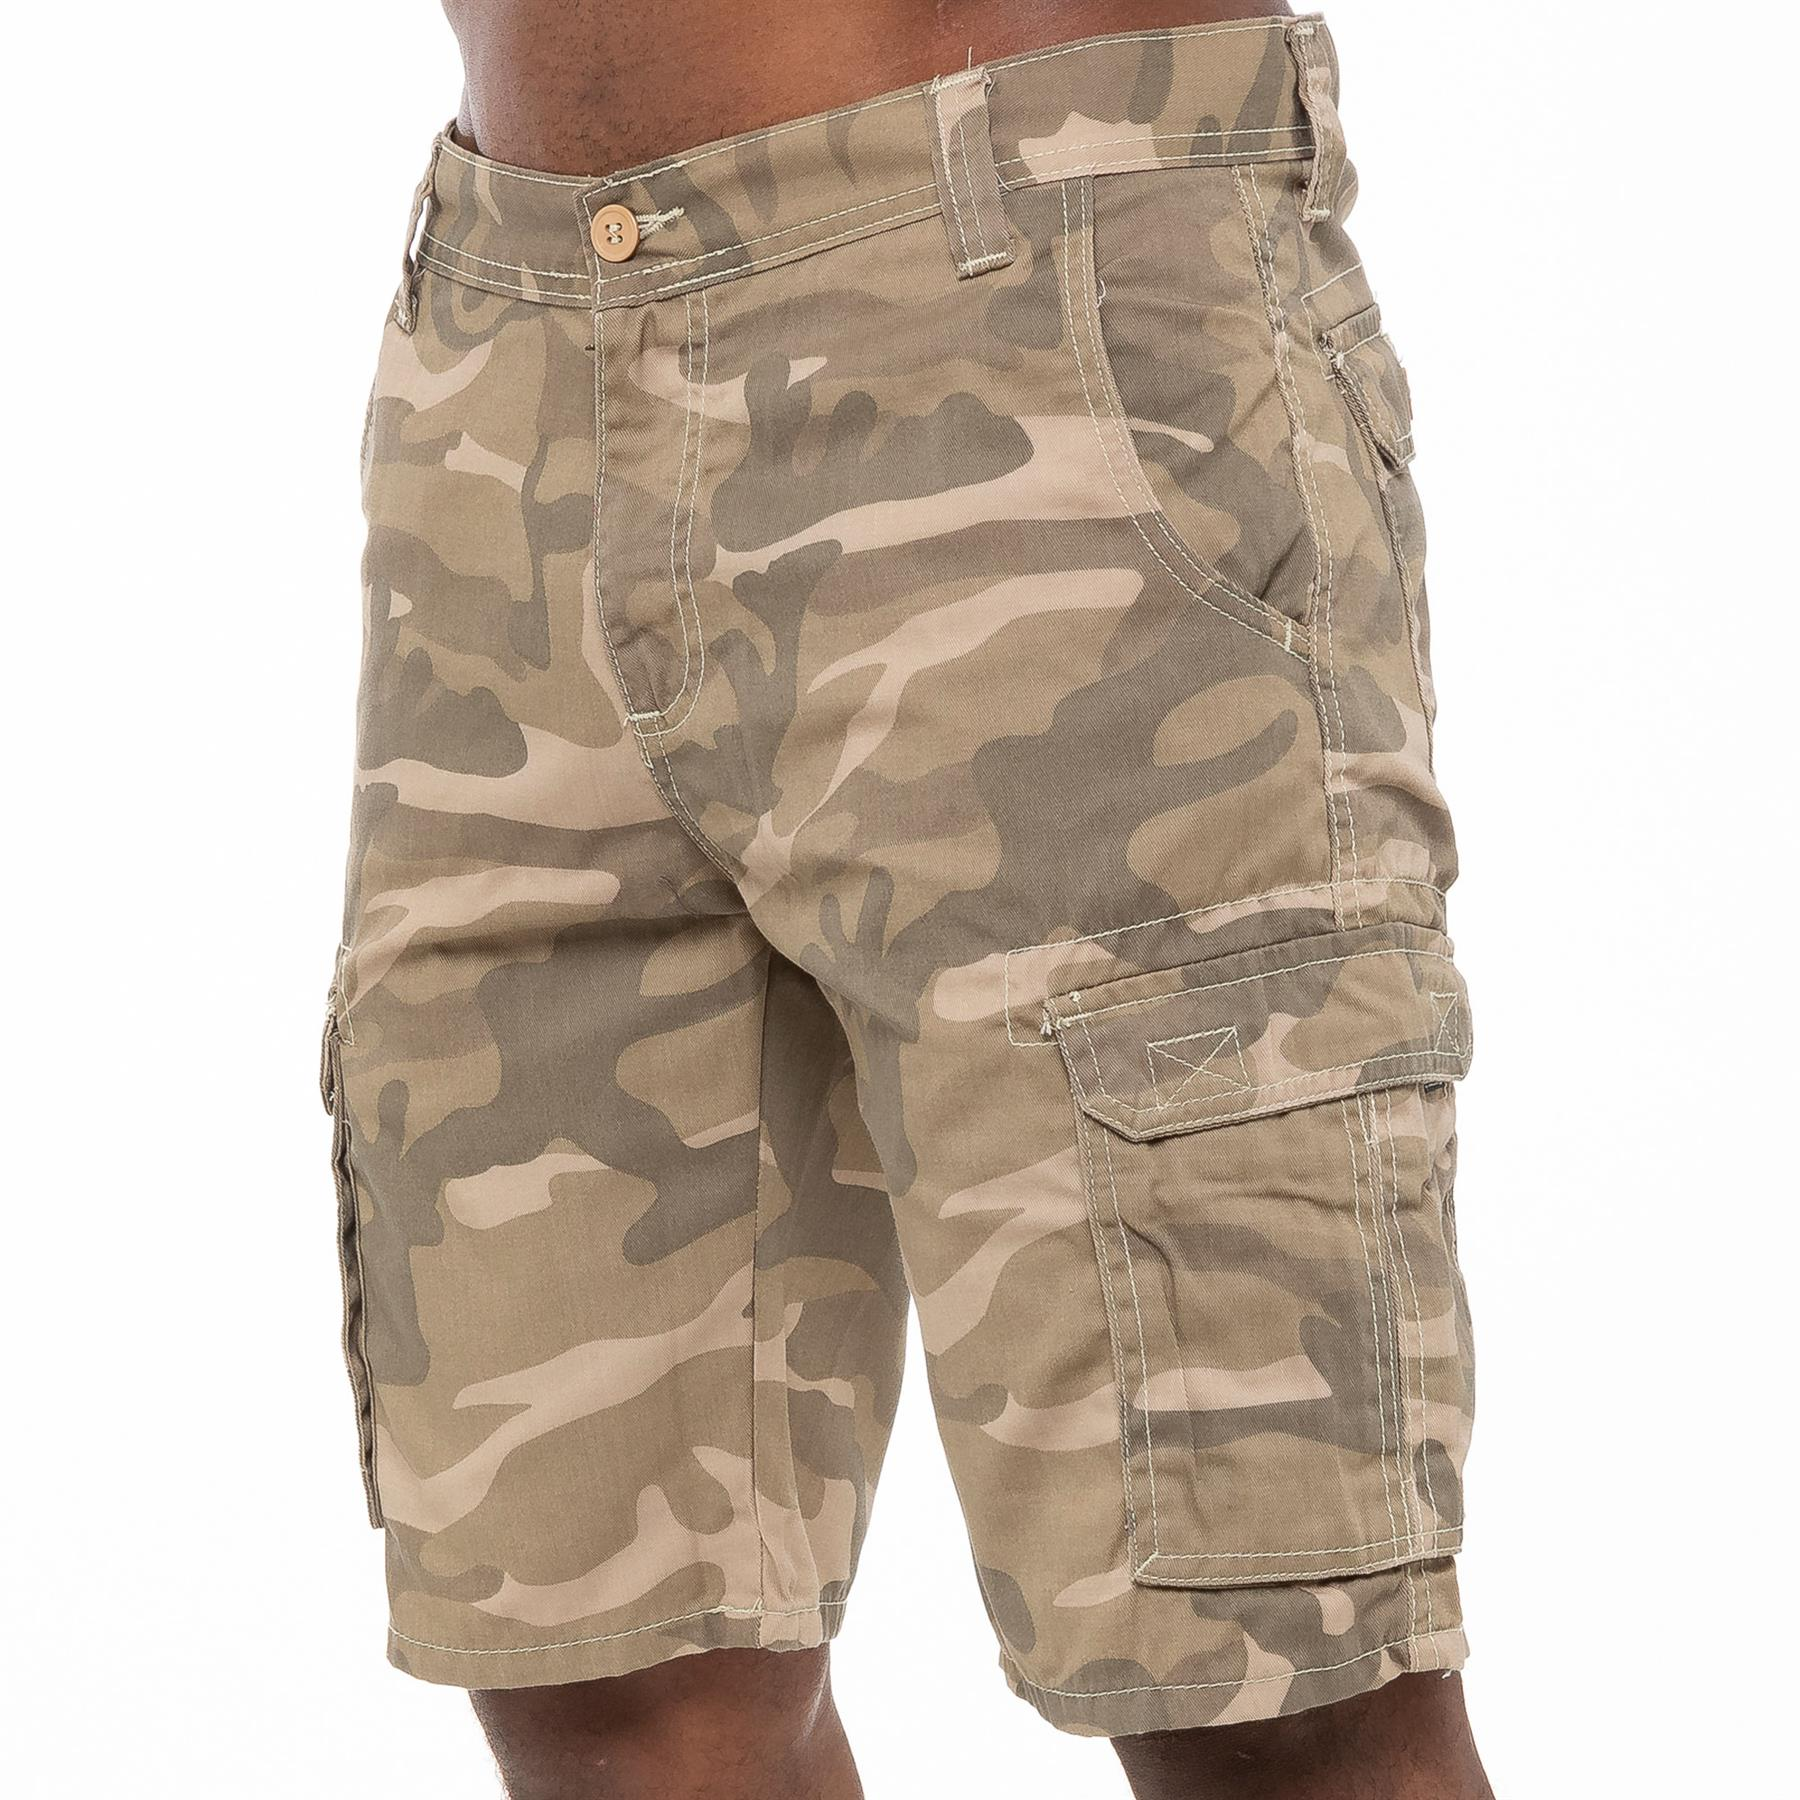 thumbnail 5 - Kruze Jeans Mens Army Combat Shorts Camouflage Cargo Casual Camo Work Half Pants